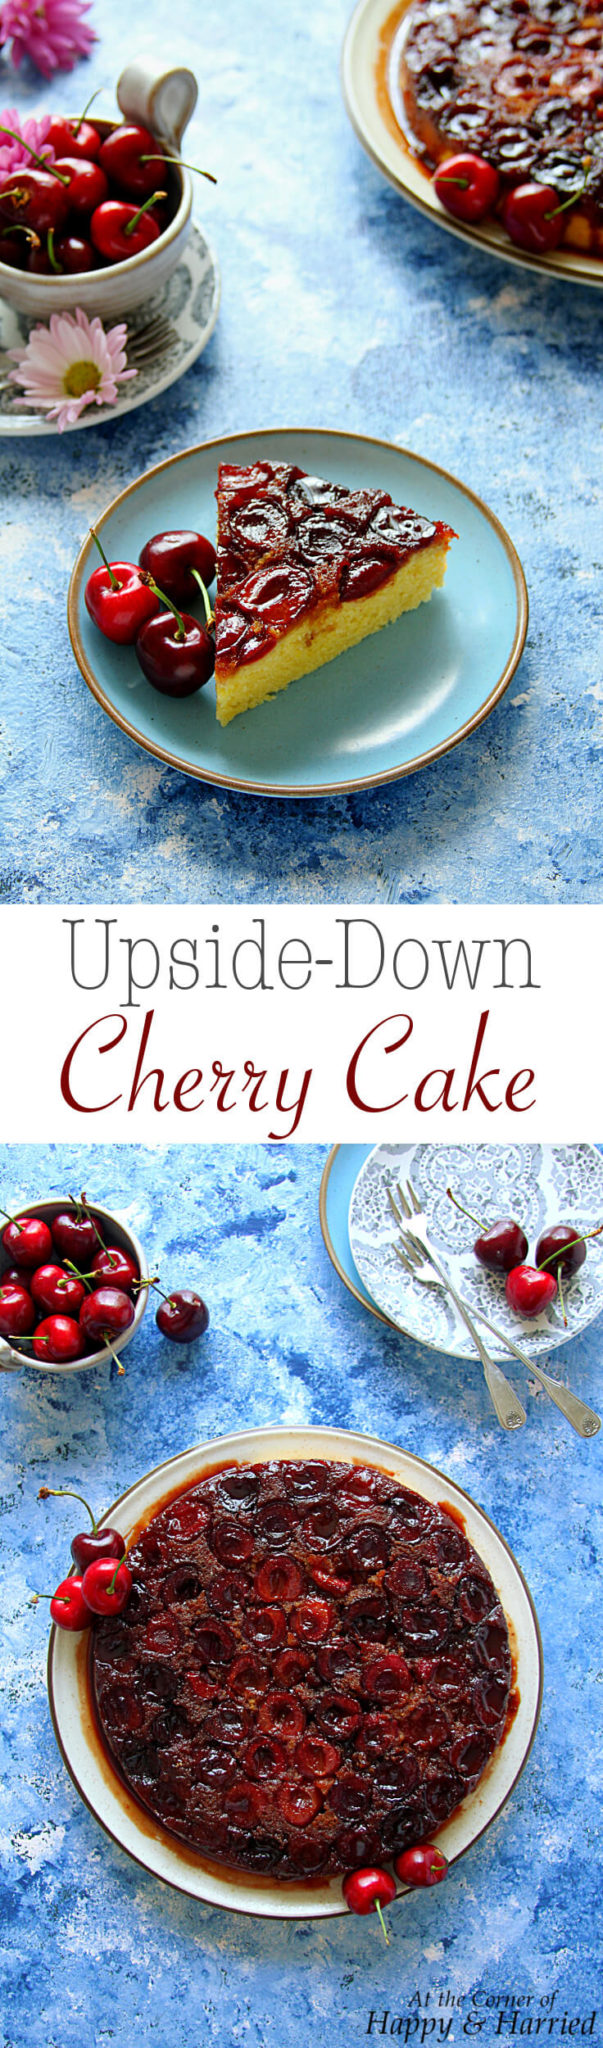 UPSIDE-DOWN CHERRY CAKE - HAPPY&HARRIED